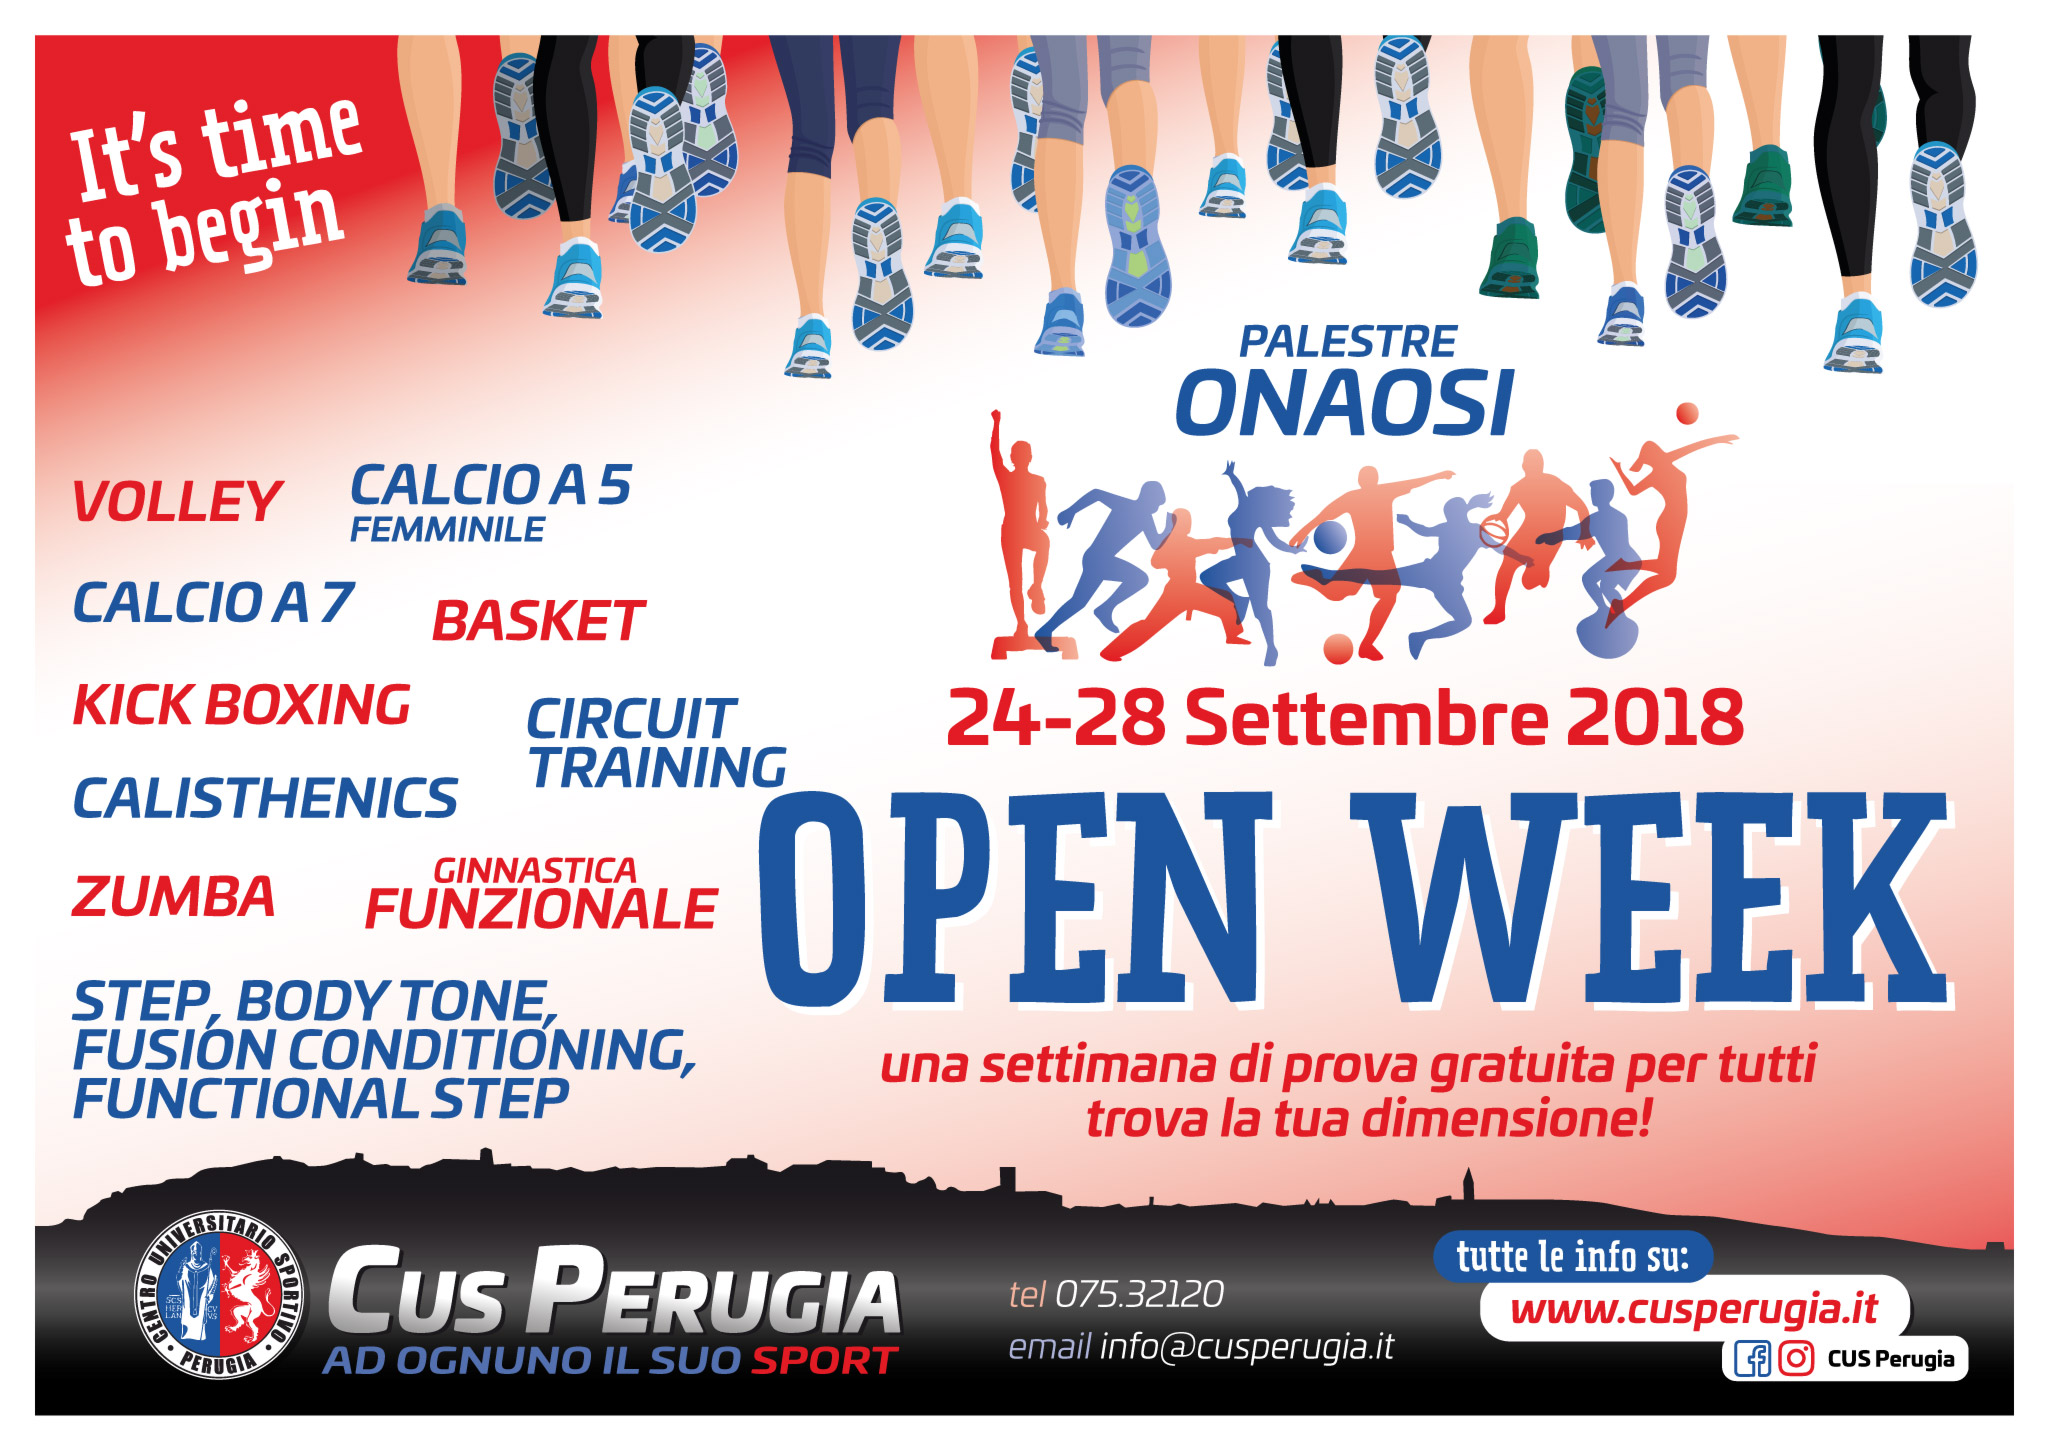 Cus Perugia Open Week 2018